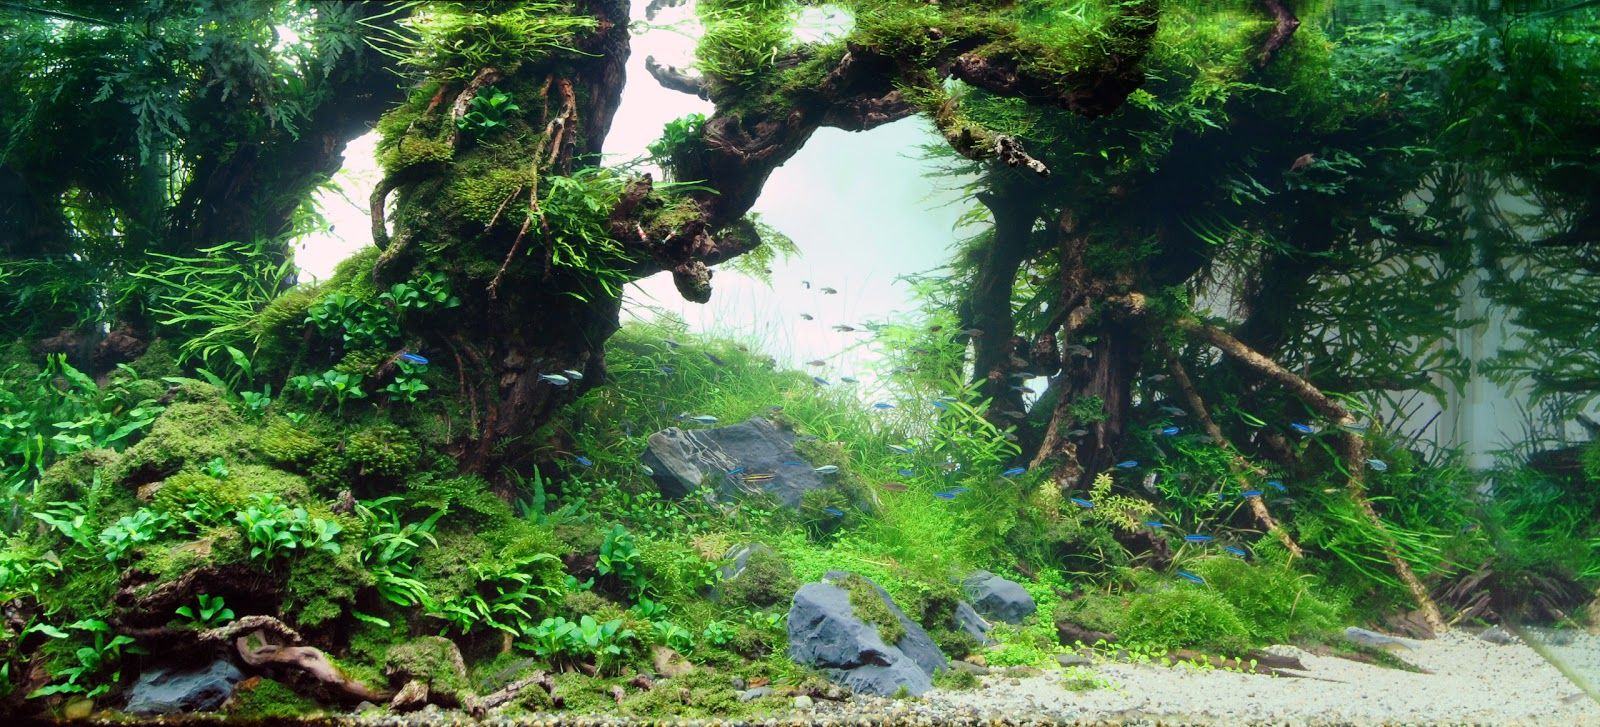 Background Poster Pics: Background Layouts For Aquarium ...